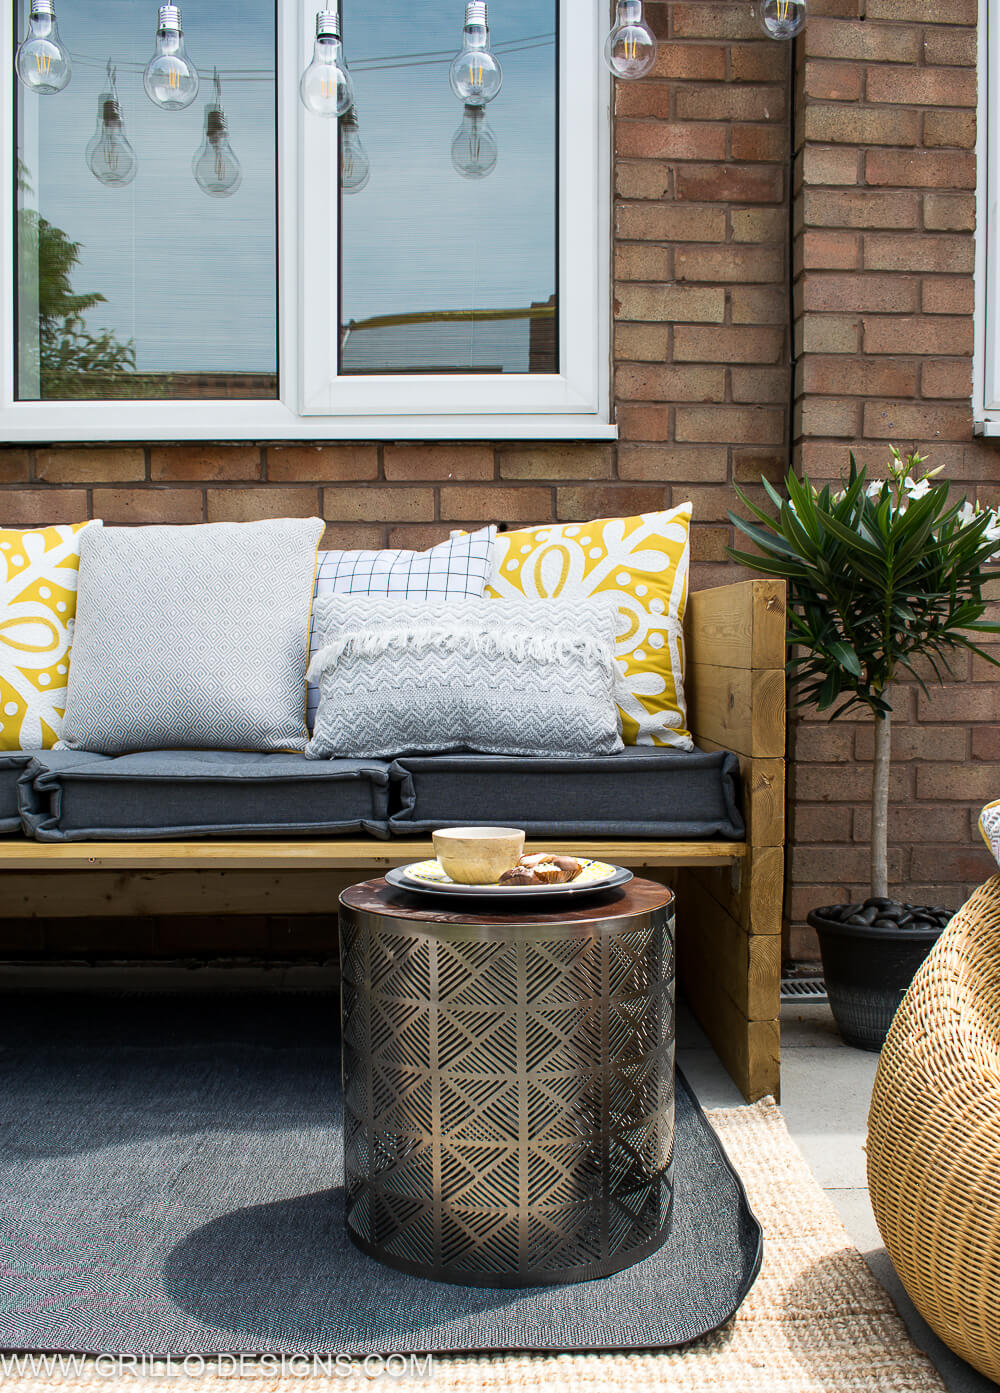 Styled outdoor sofa with sainsburys home / grillo designs